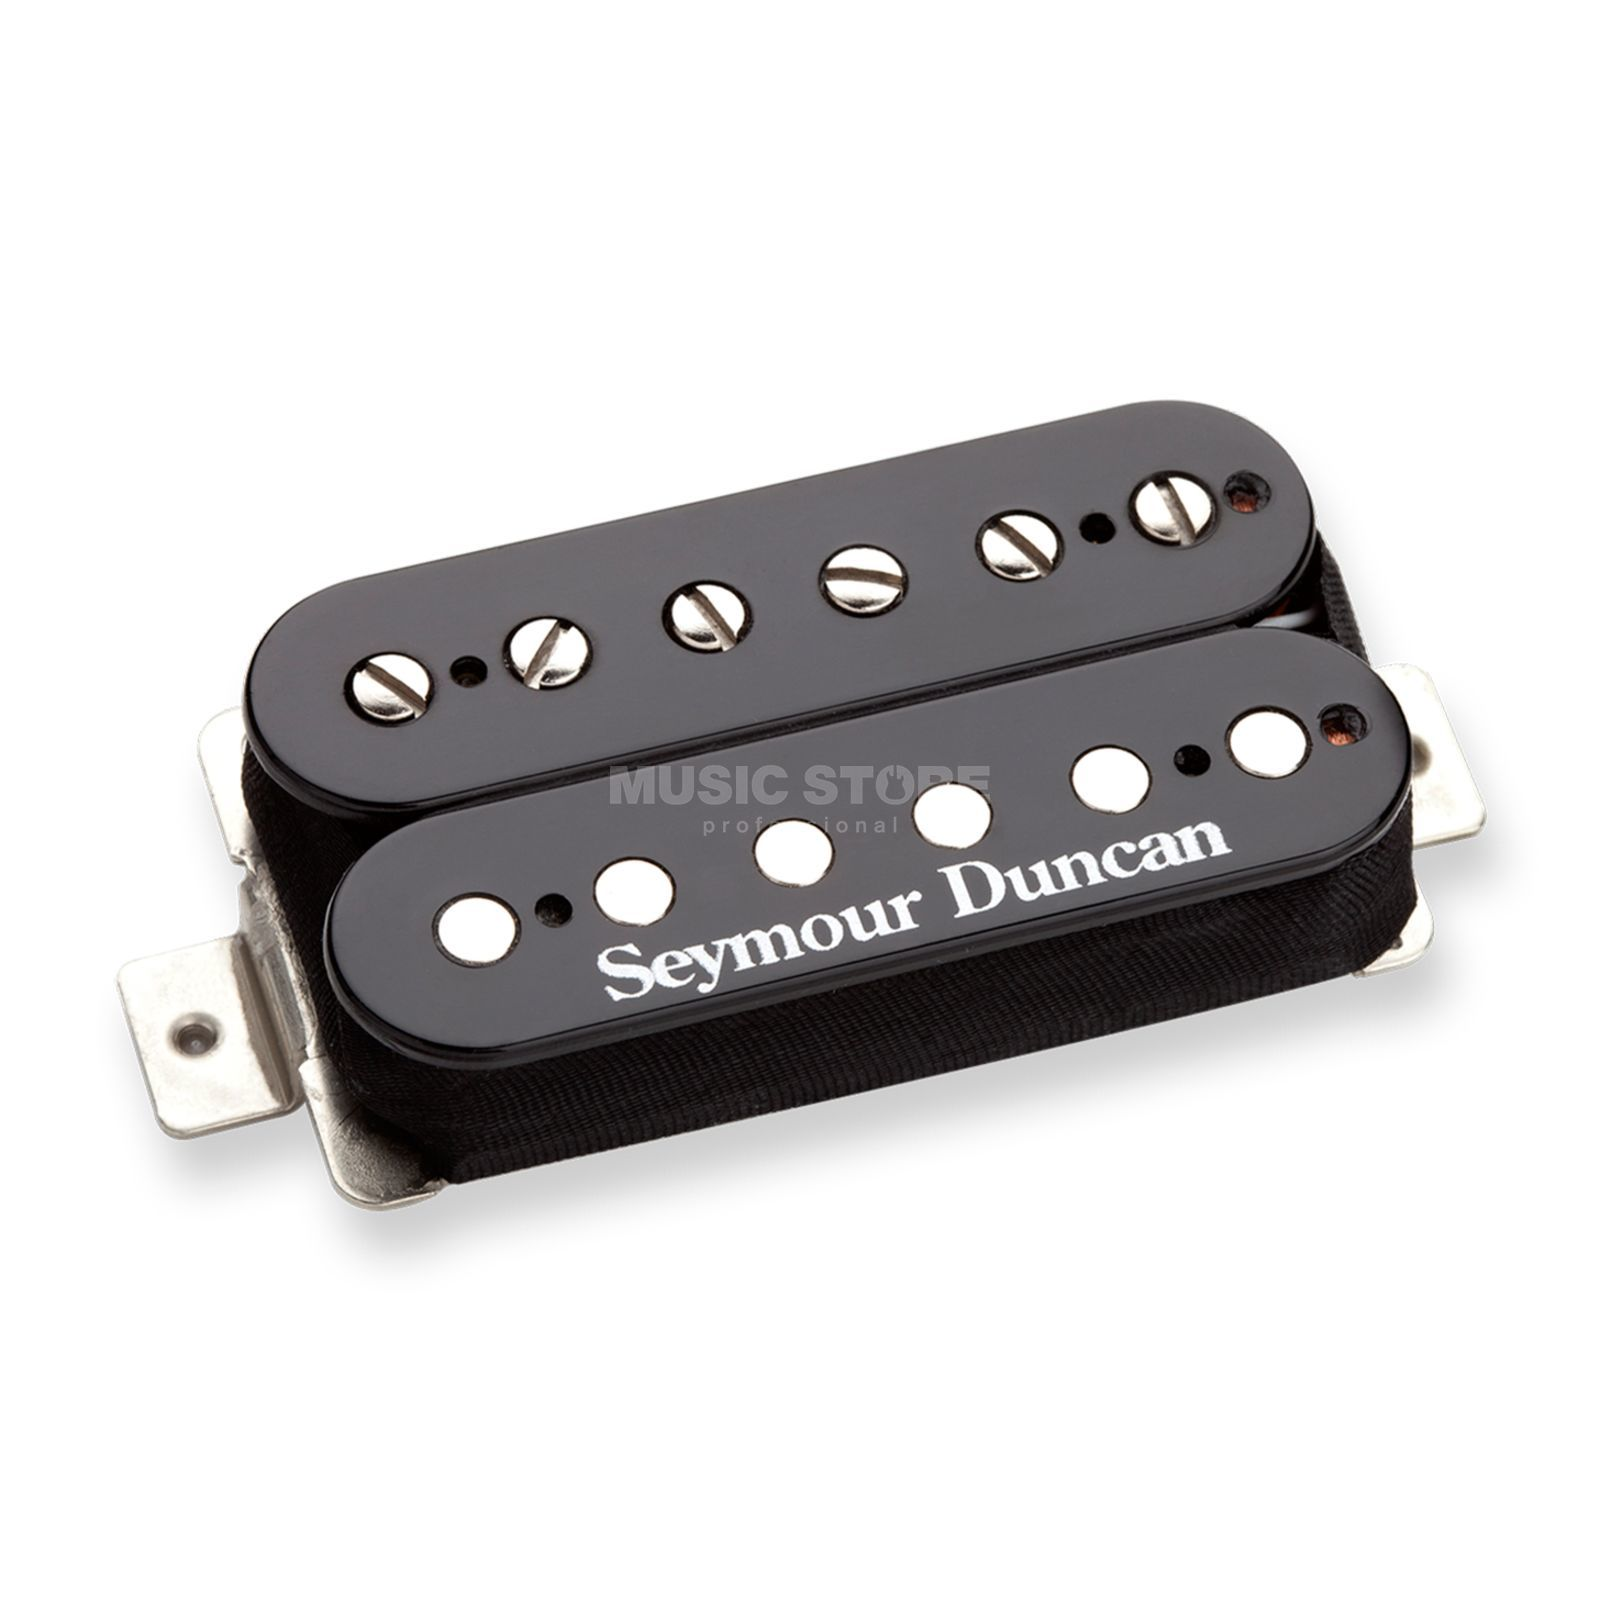 Seymour Duncan Jazz Modell Neck black 4-phase Product Image